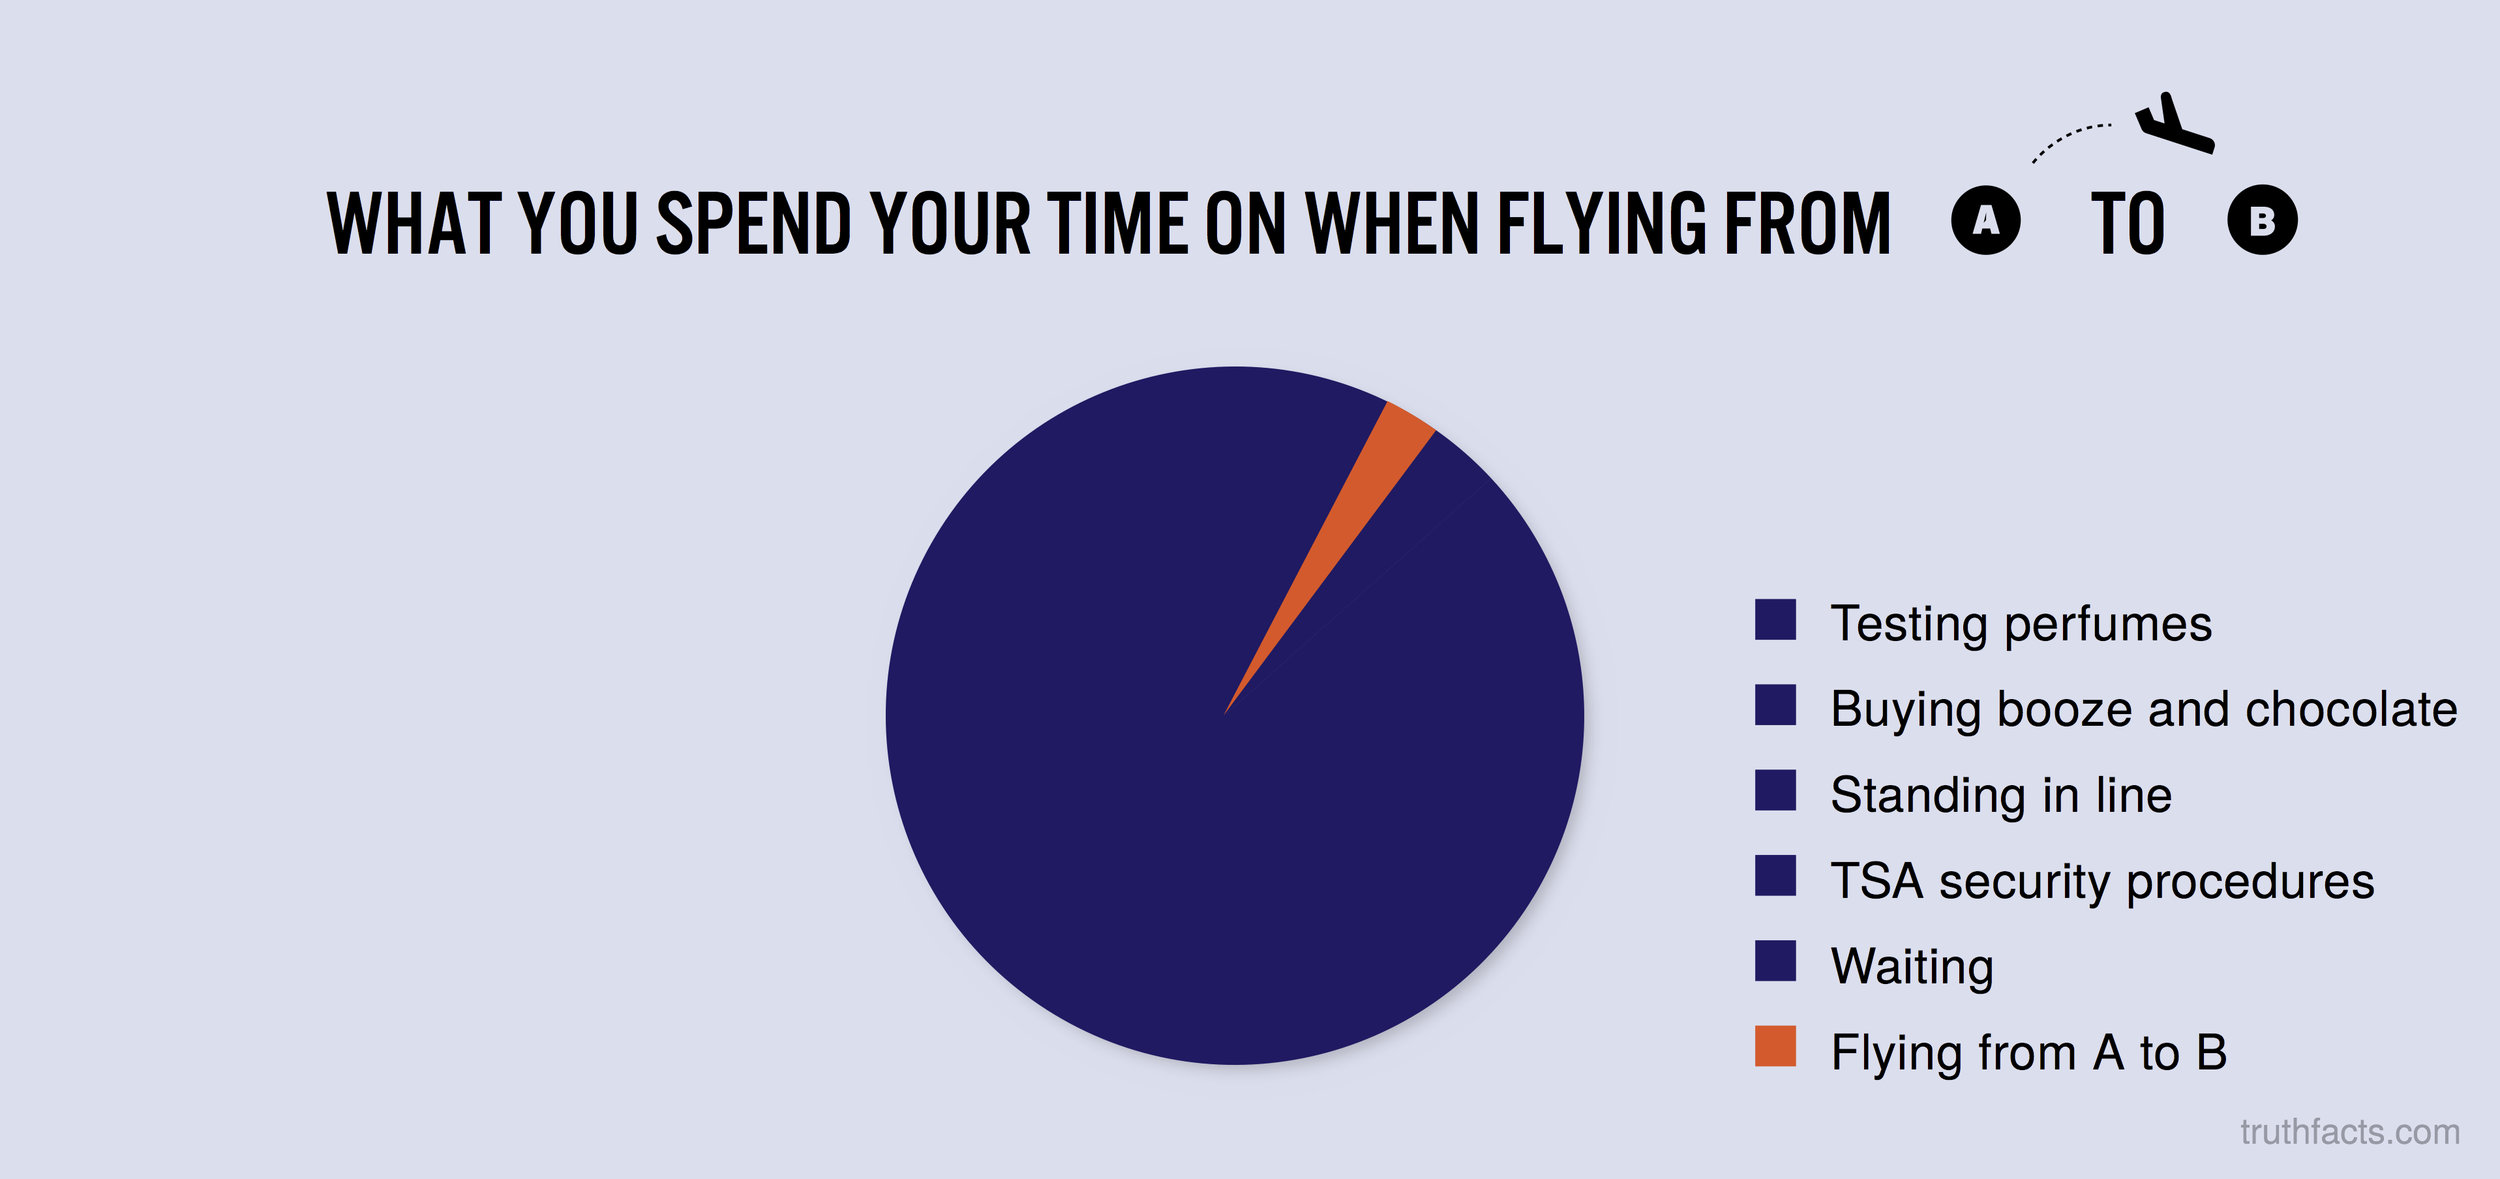 What you spend your time on when flying from a to b